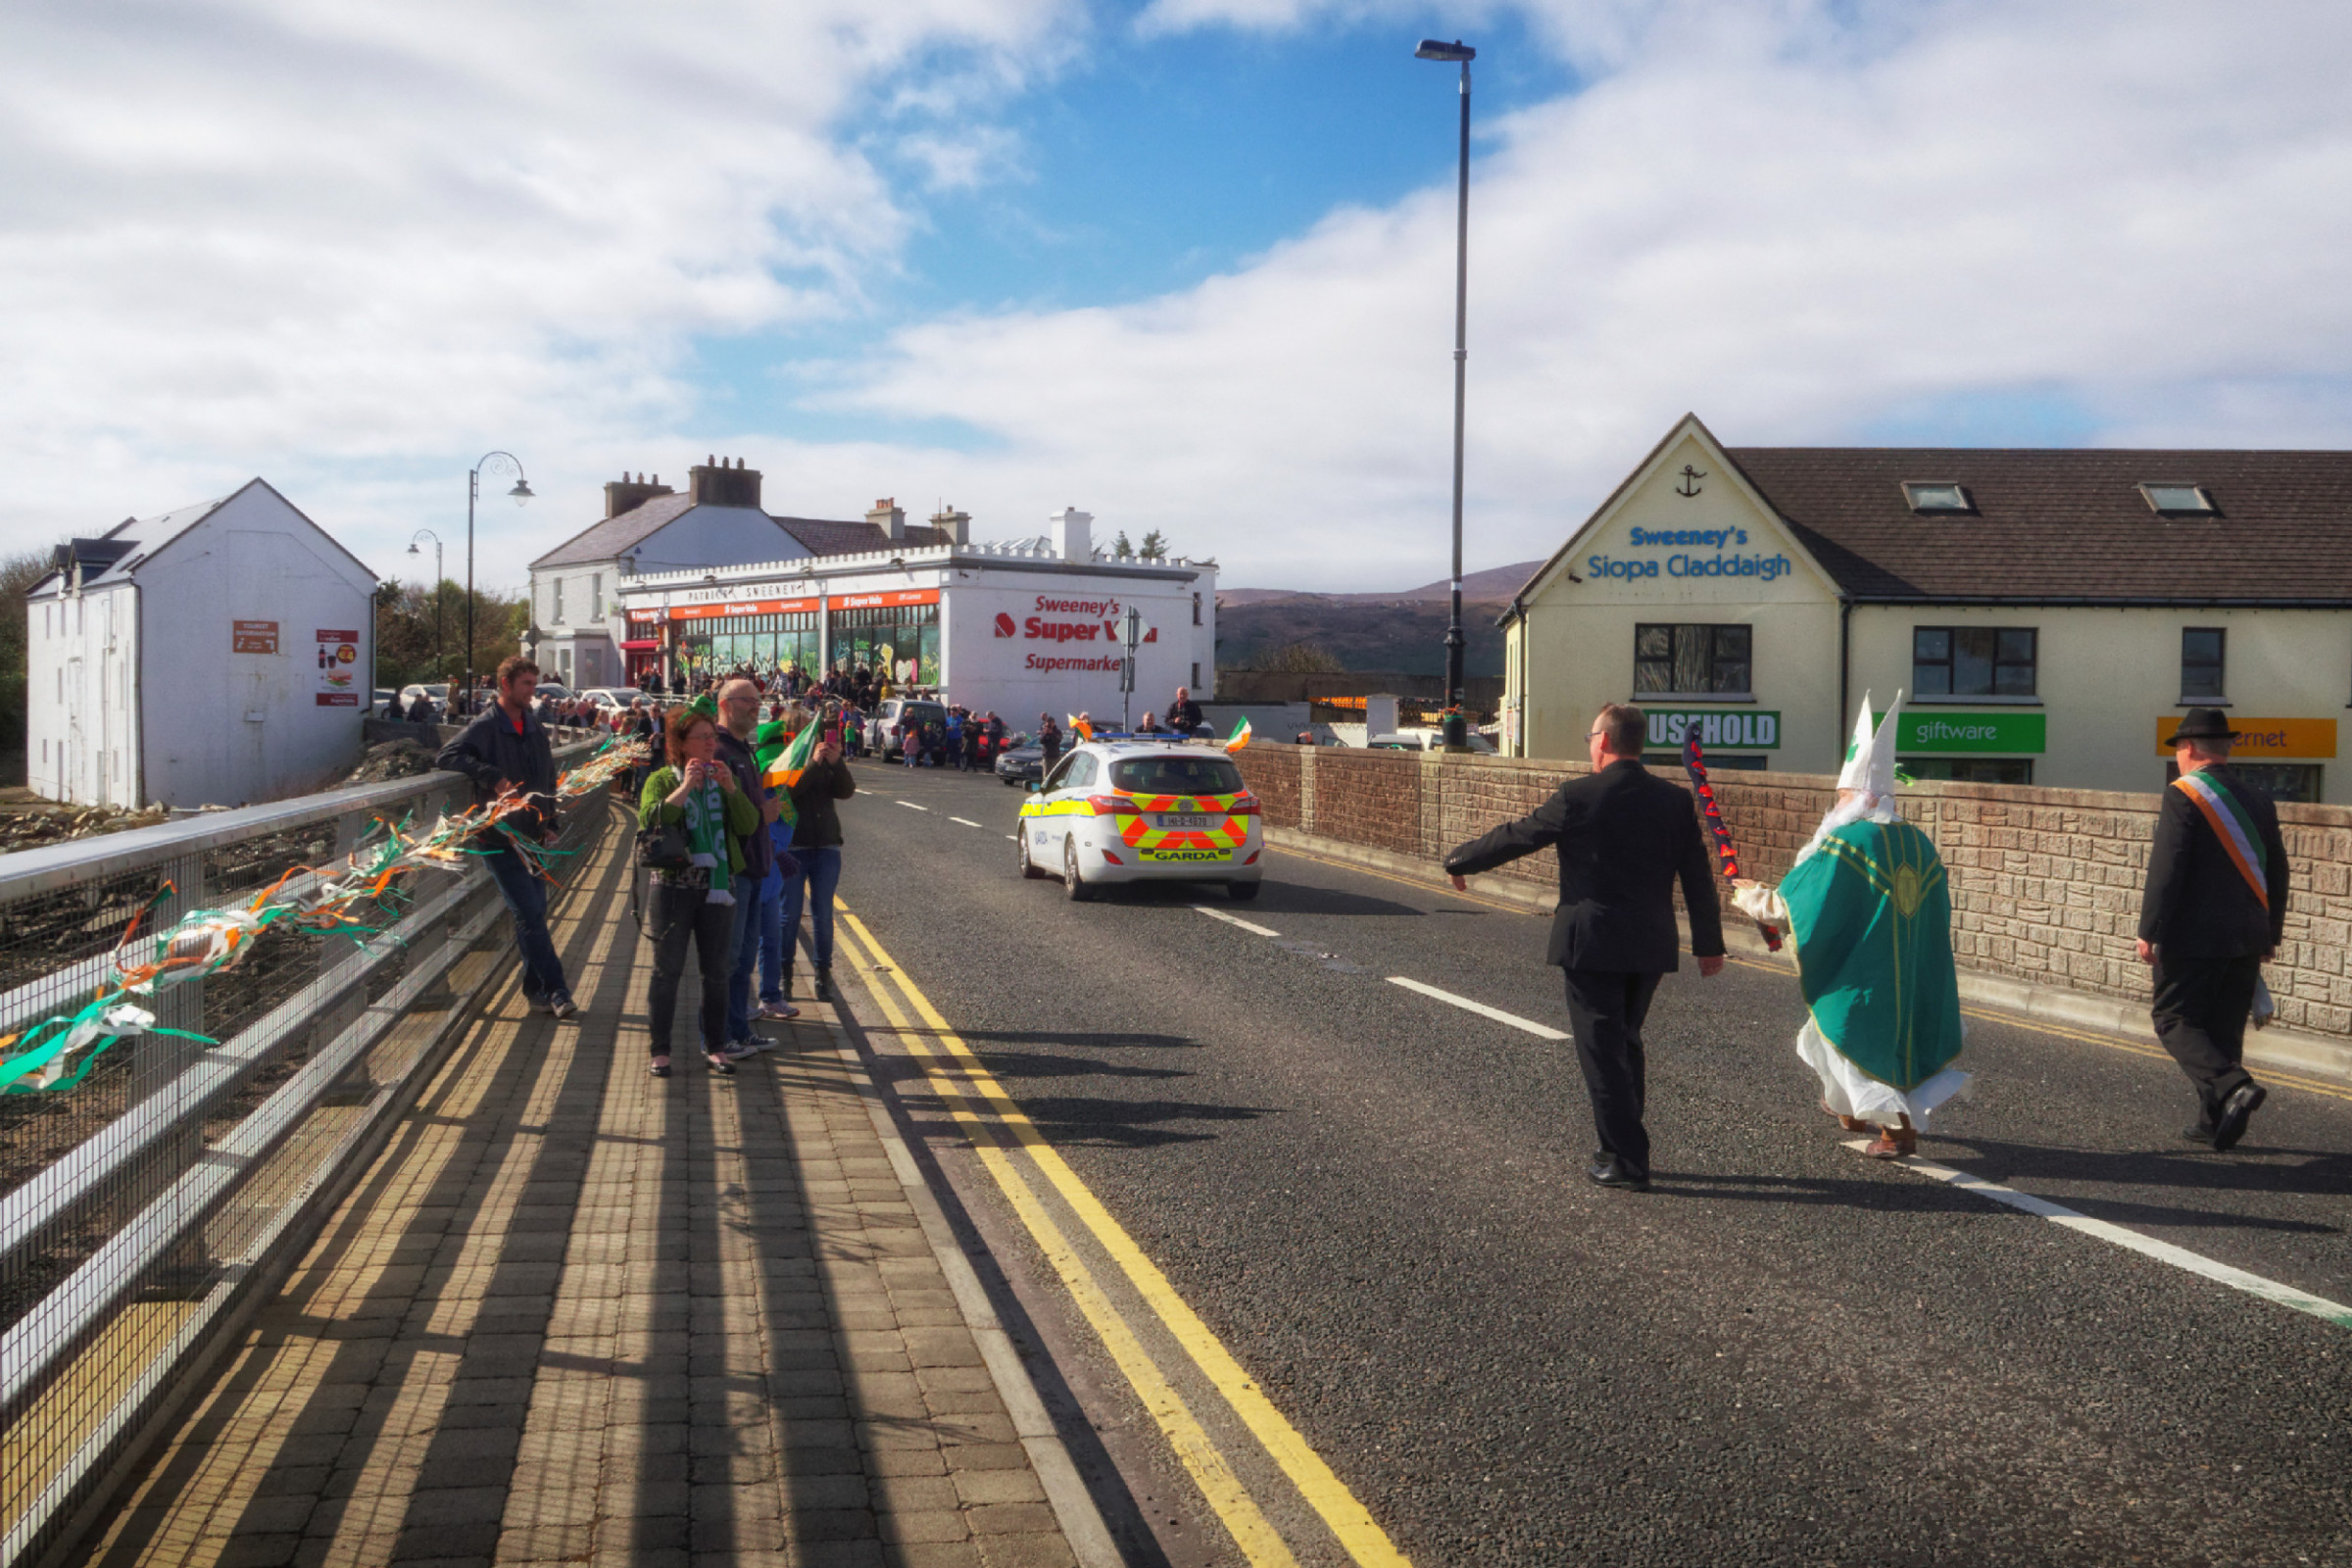 20160320125916-ie-achill-sound_parade-_DxO_13in_DxO96